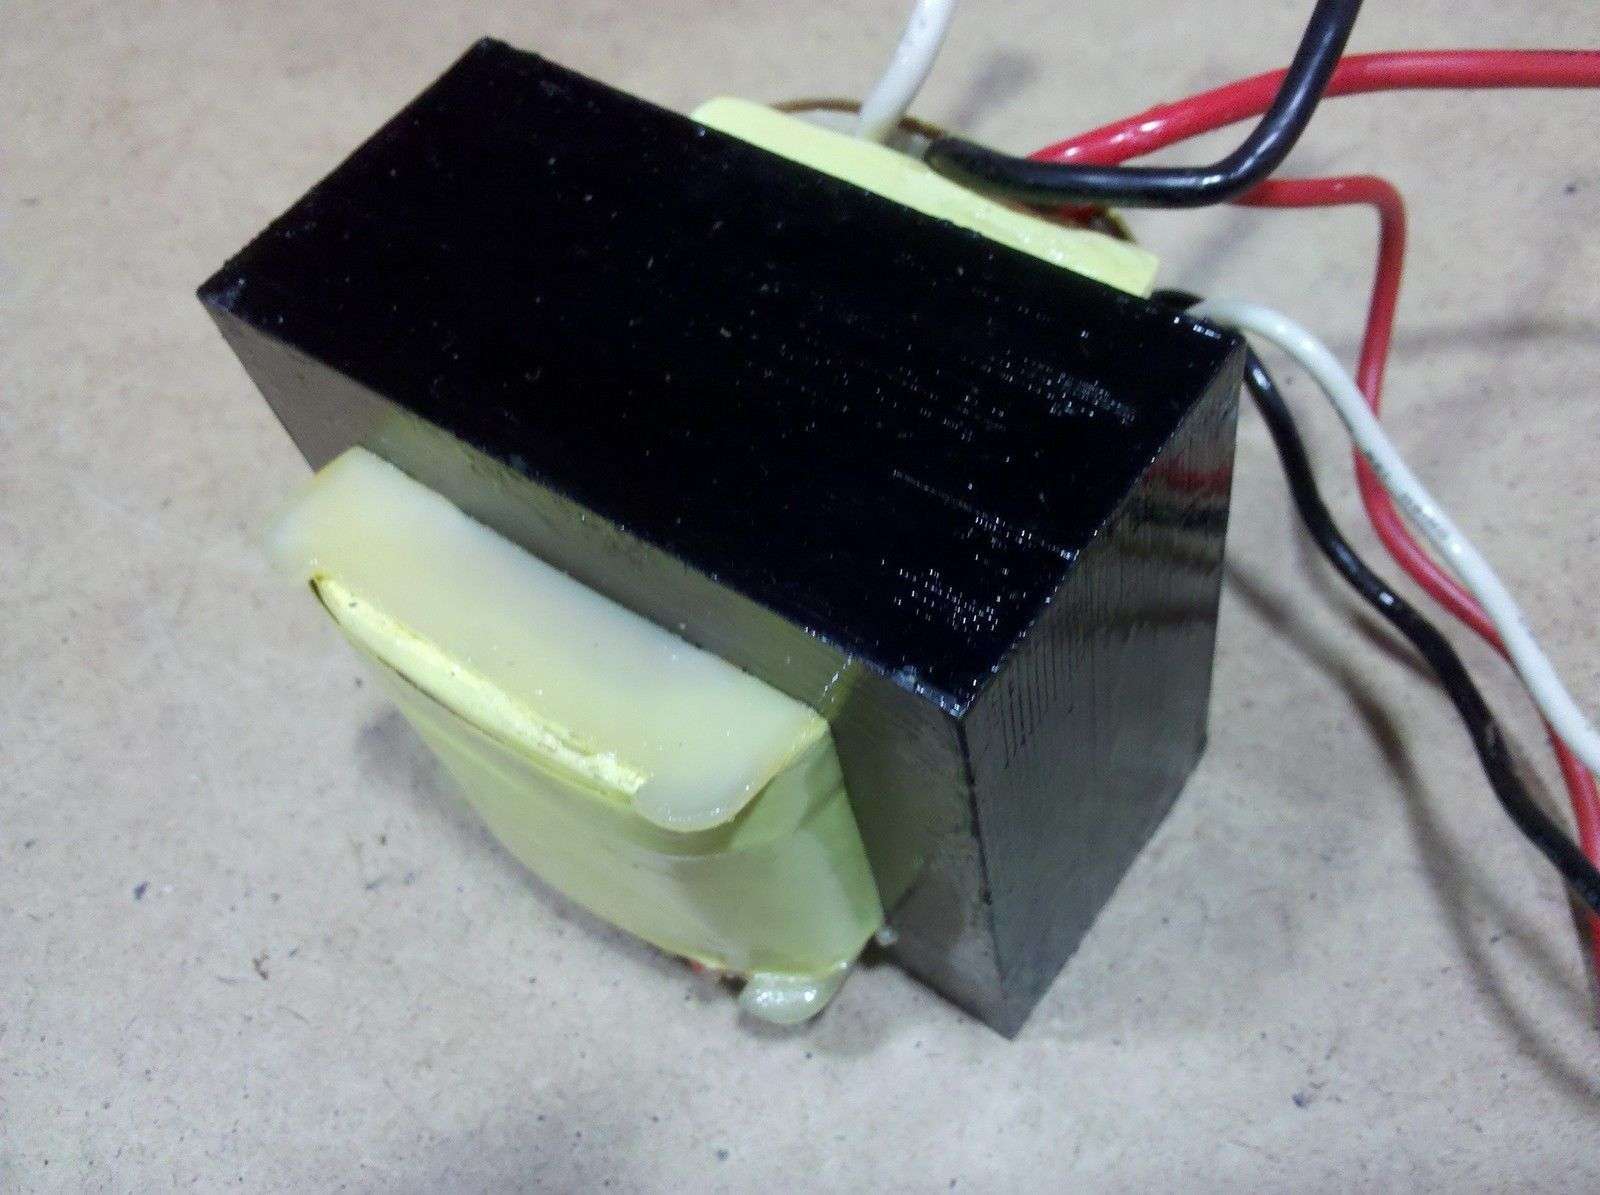 7SS89 Power Supply From Apc Ups: 120VAC and 28 similar items